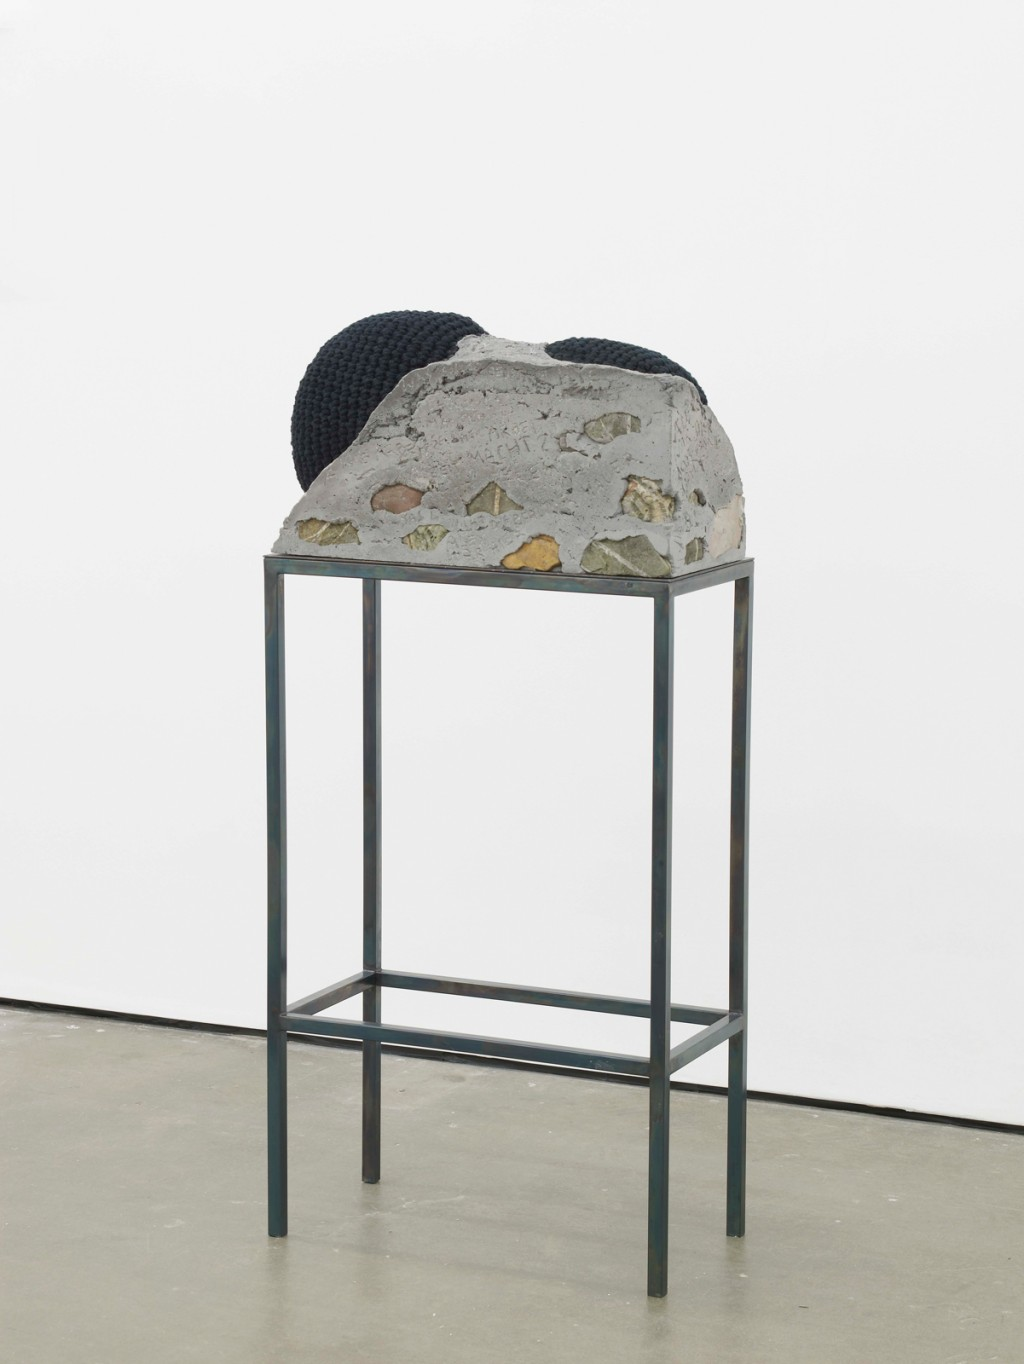 ALEXANDRA BIRCKEN Other Works, 2015